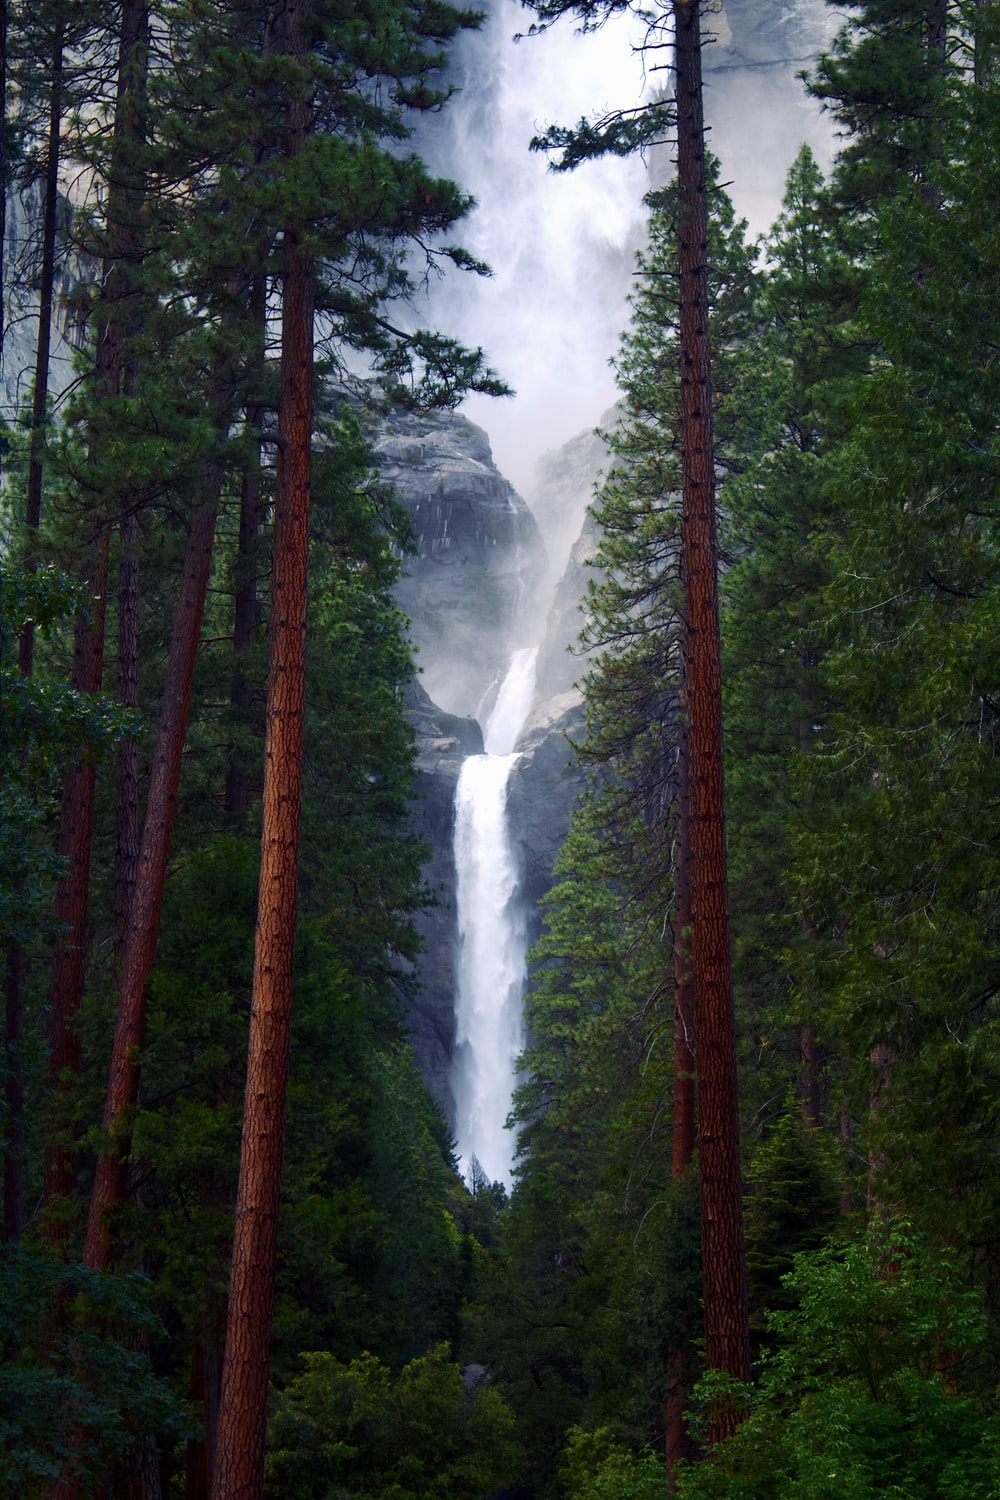 green and brown trees with water falls